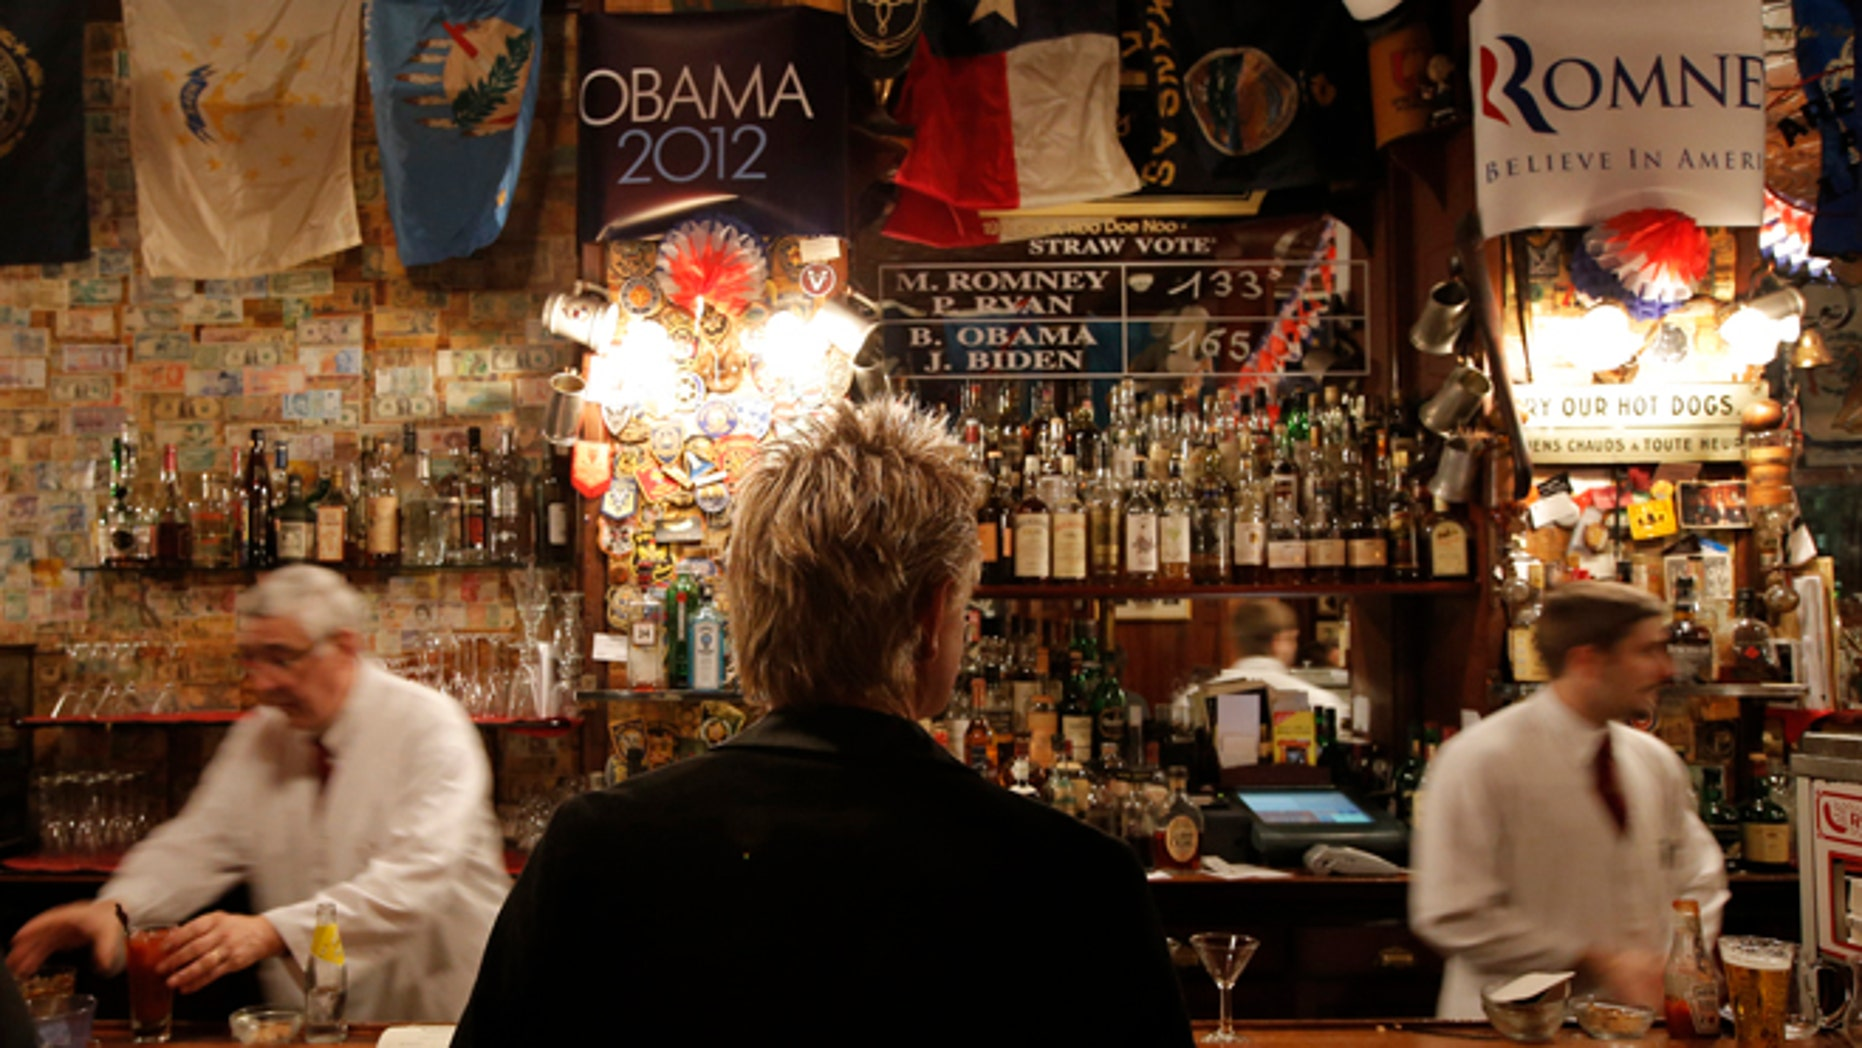 Oct. 31, 2012: The temporary results of a U.S. presidential election straw vote is displayed on a board at Harry's Bar in Paris.